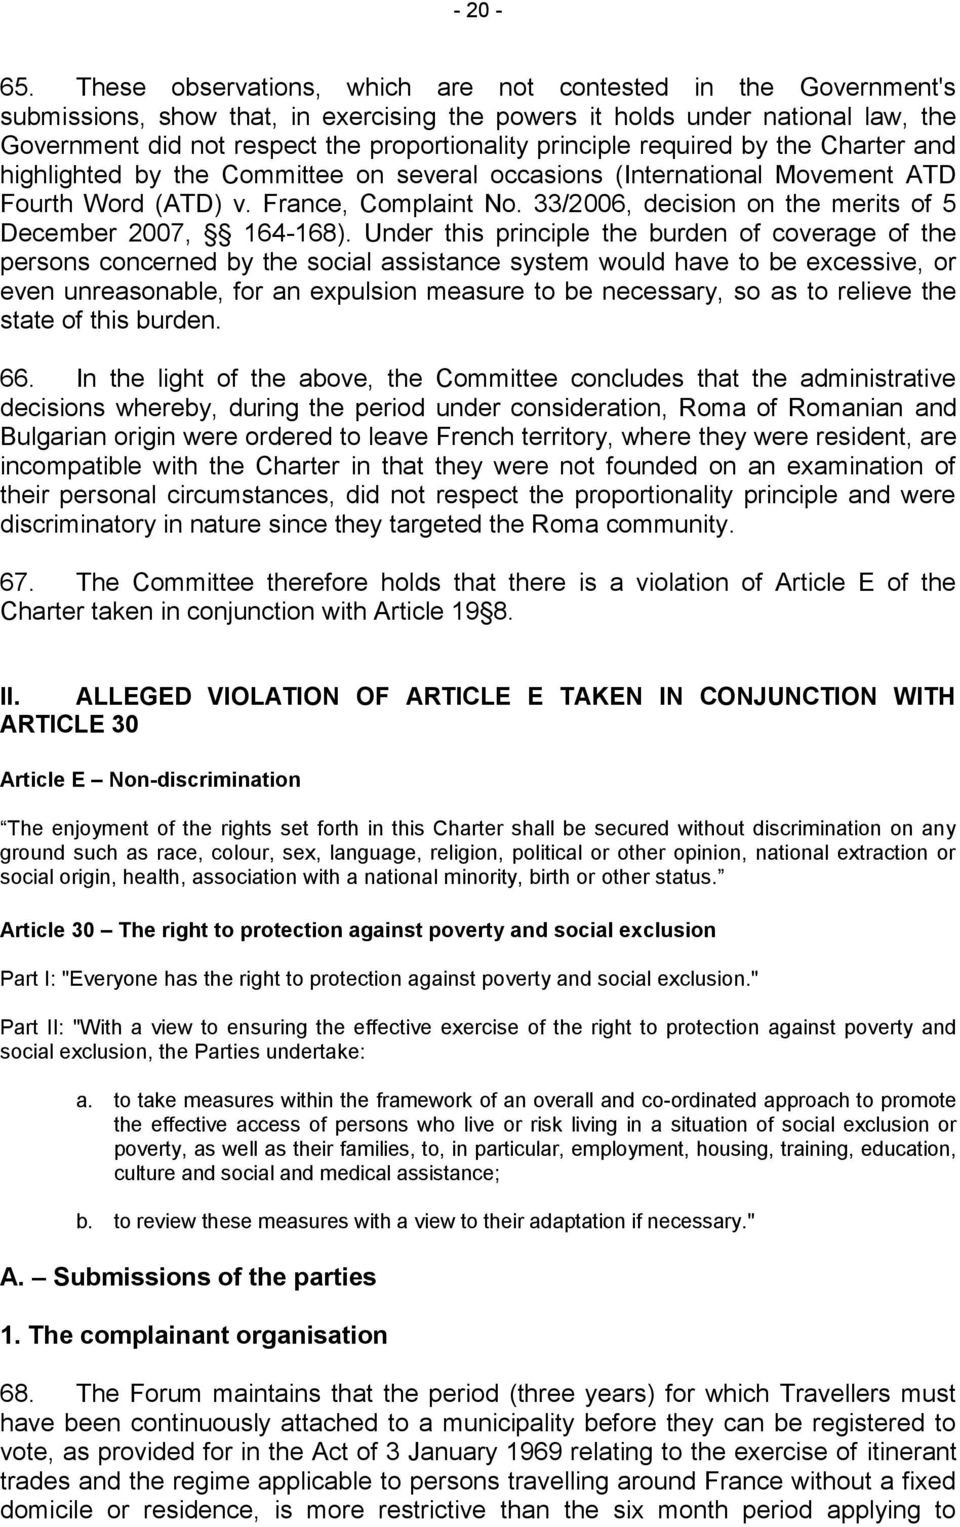 principle required by the Charter and highlighted by the Committee on several occasions (International Movement ATD Fourth Word (ATD) v. France, Complaint No.